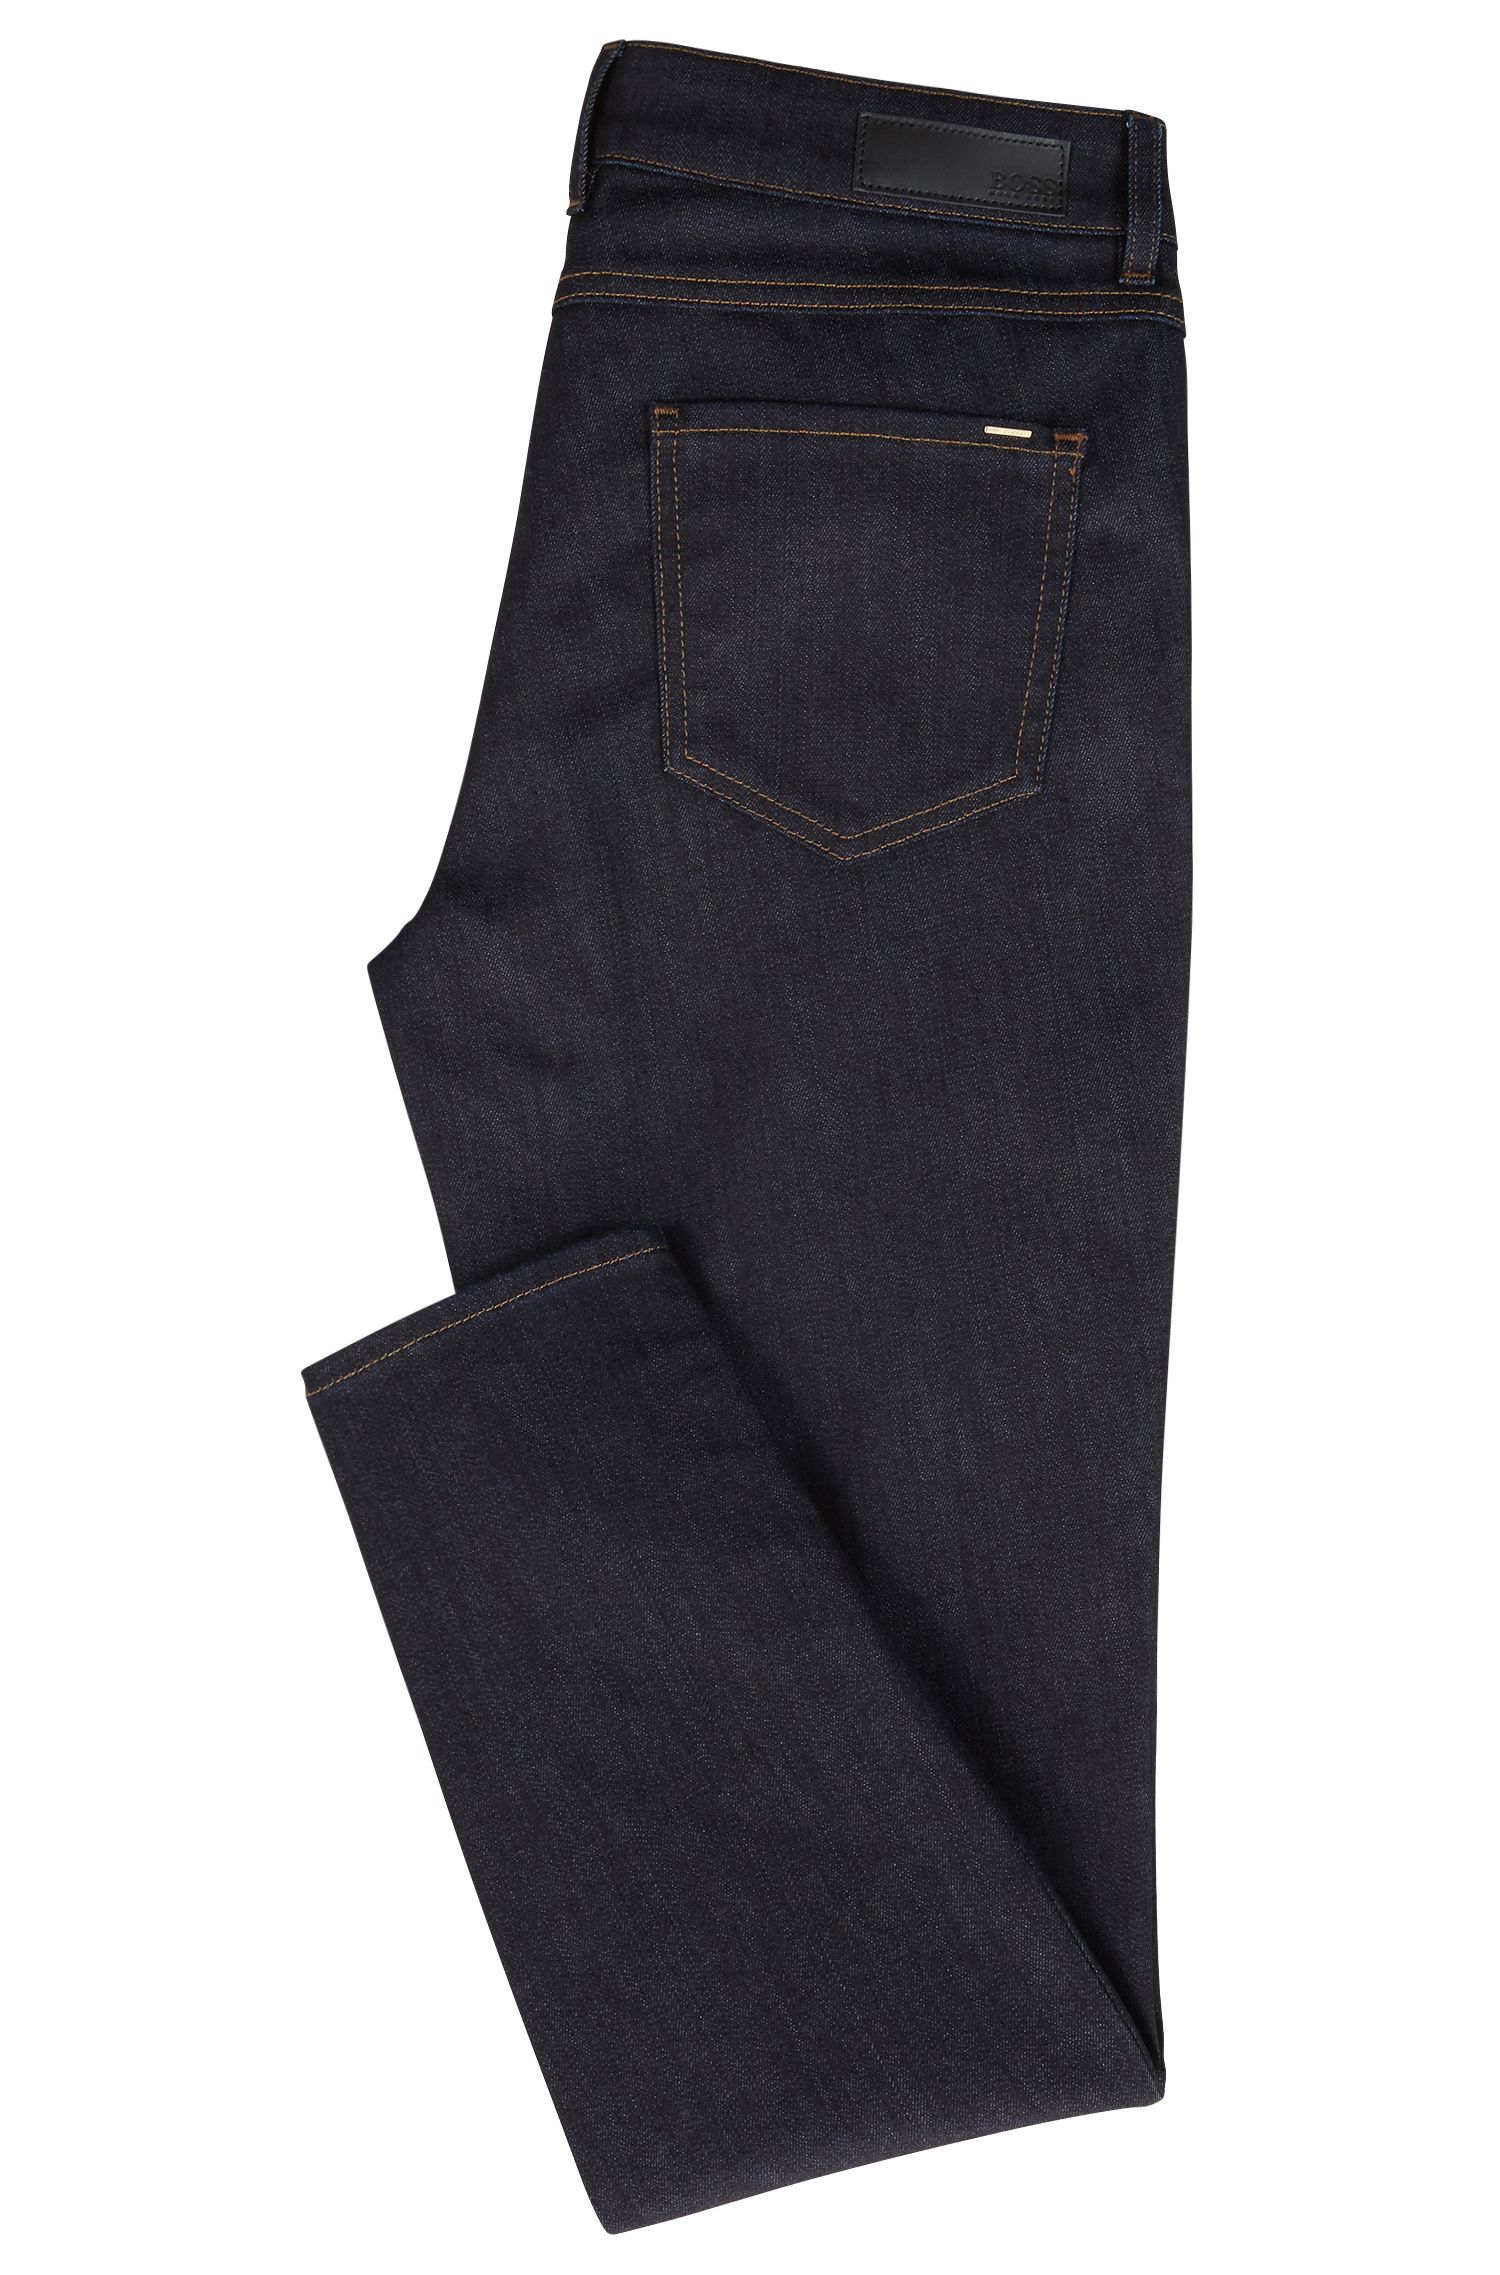 Jeans Regular Fit de coupe 5 poches